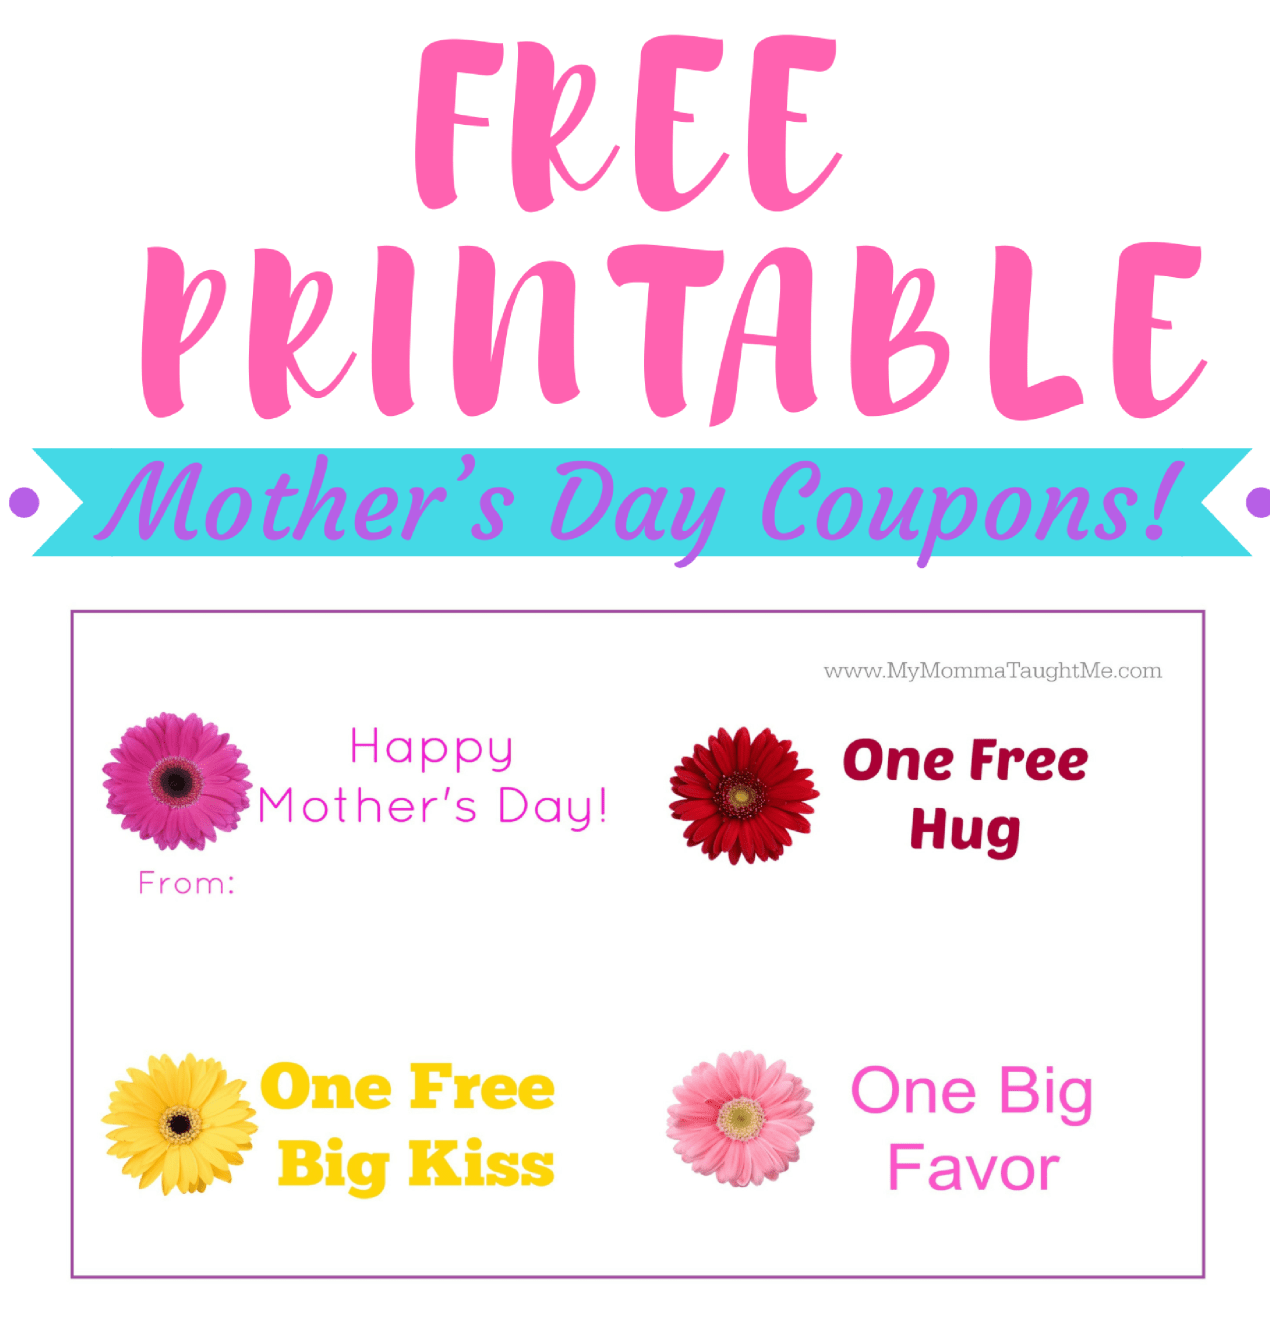 FREE PRINTABLE Mothers Day Coupons